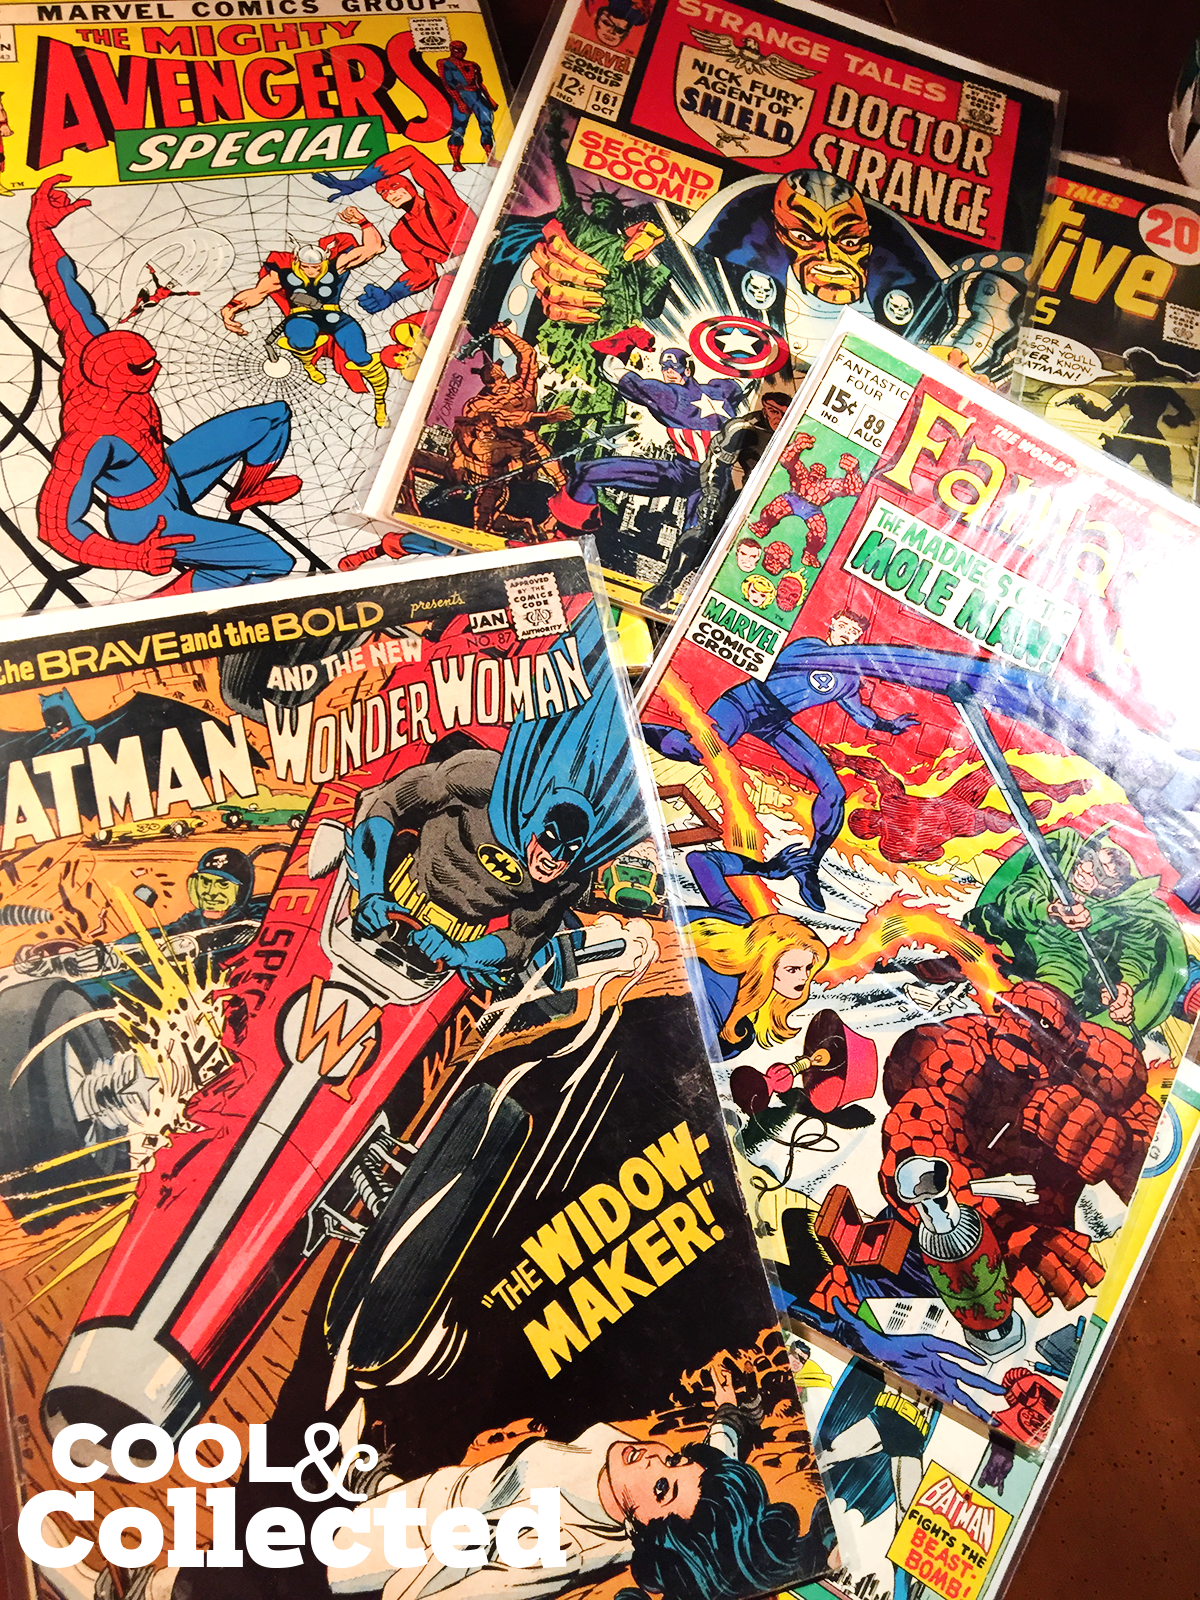 I suck at collecting comic books